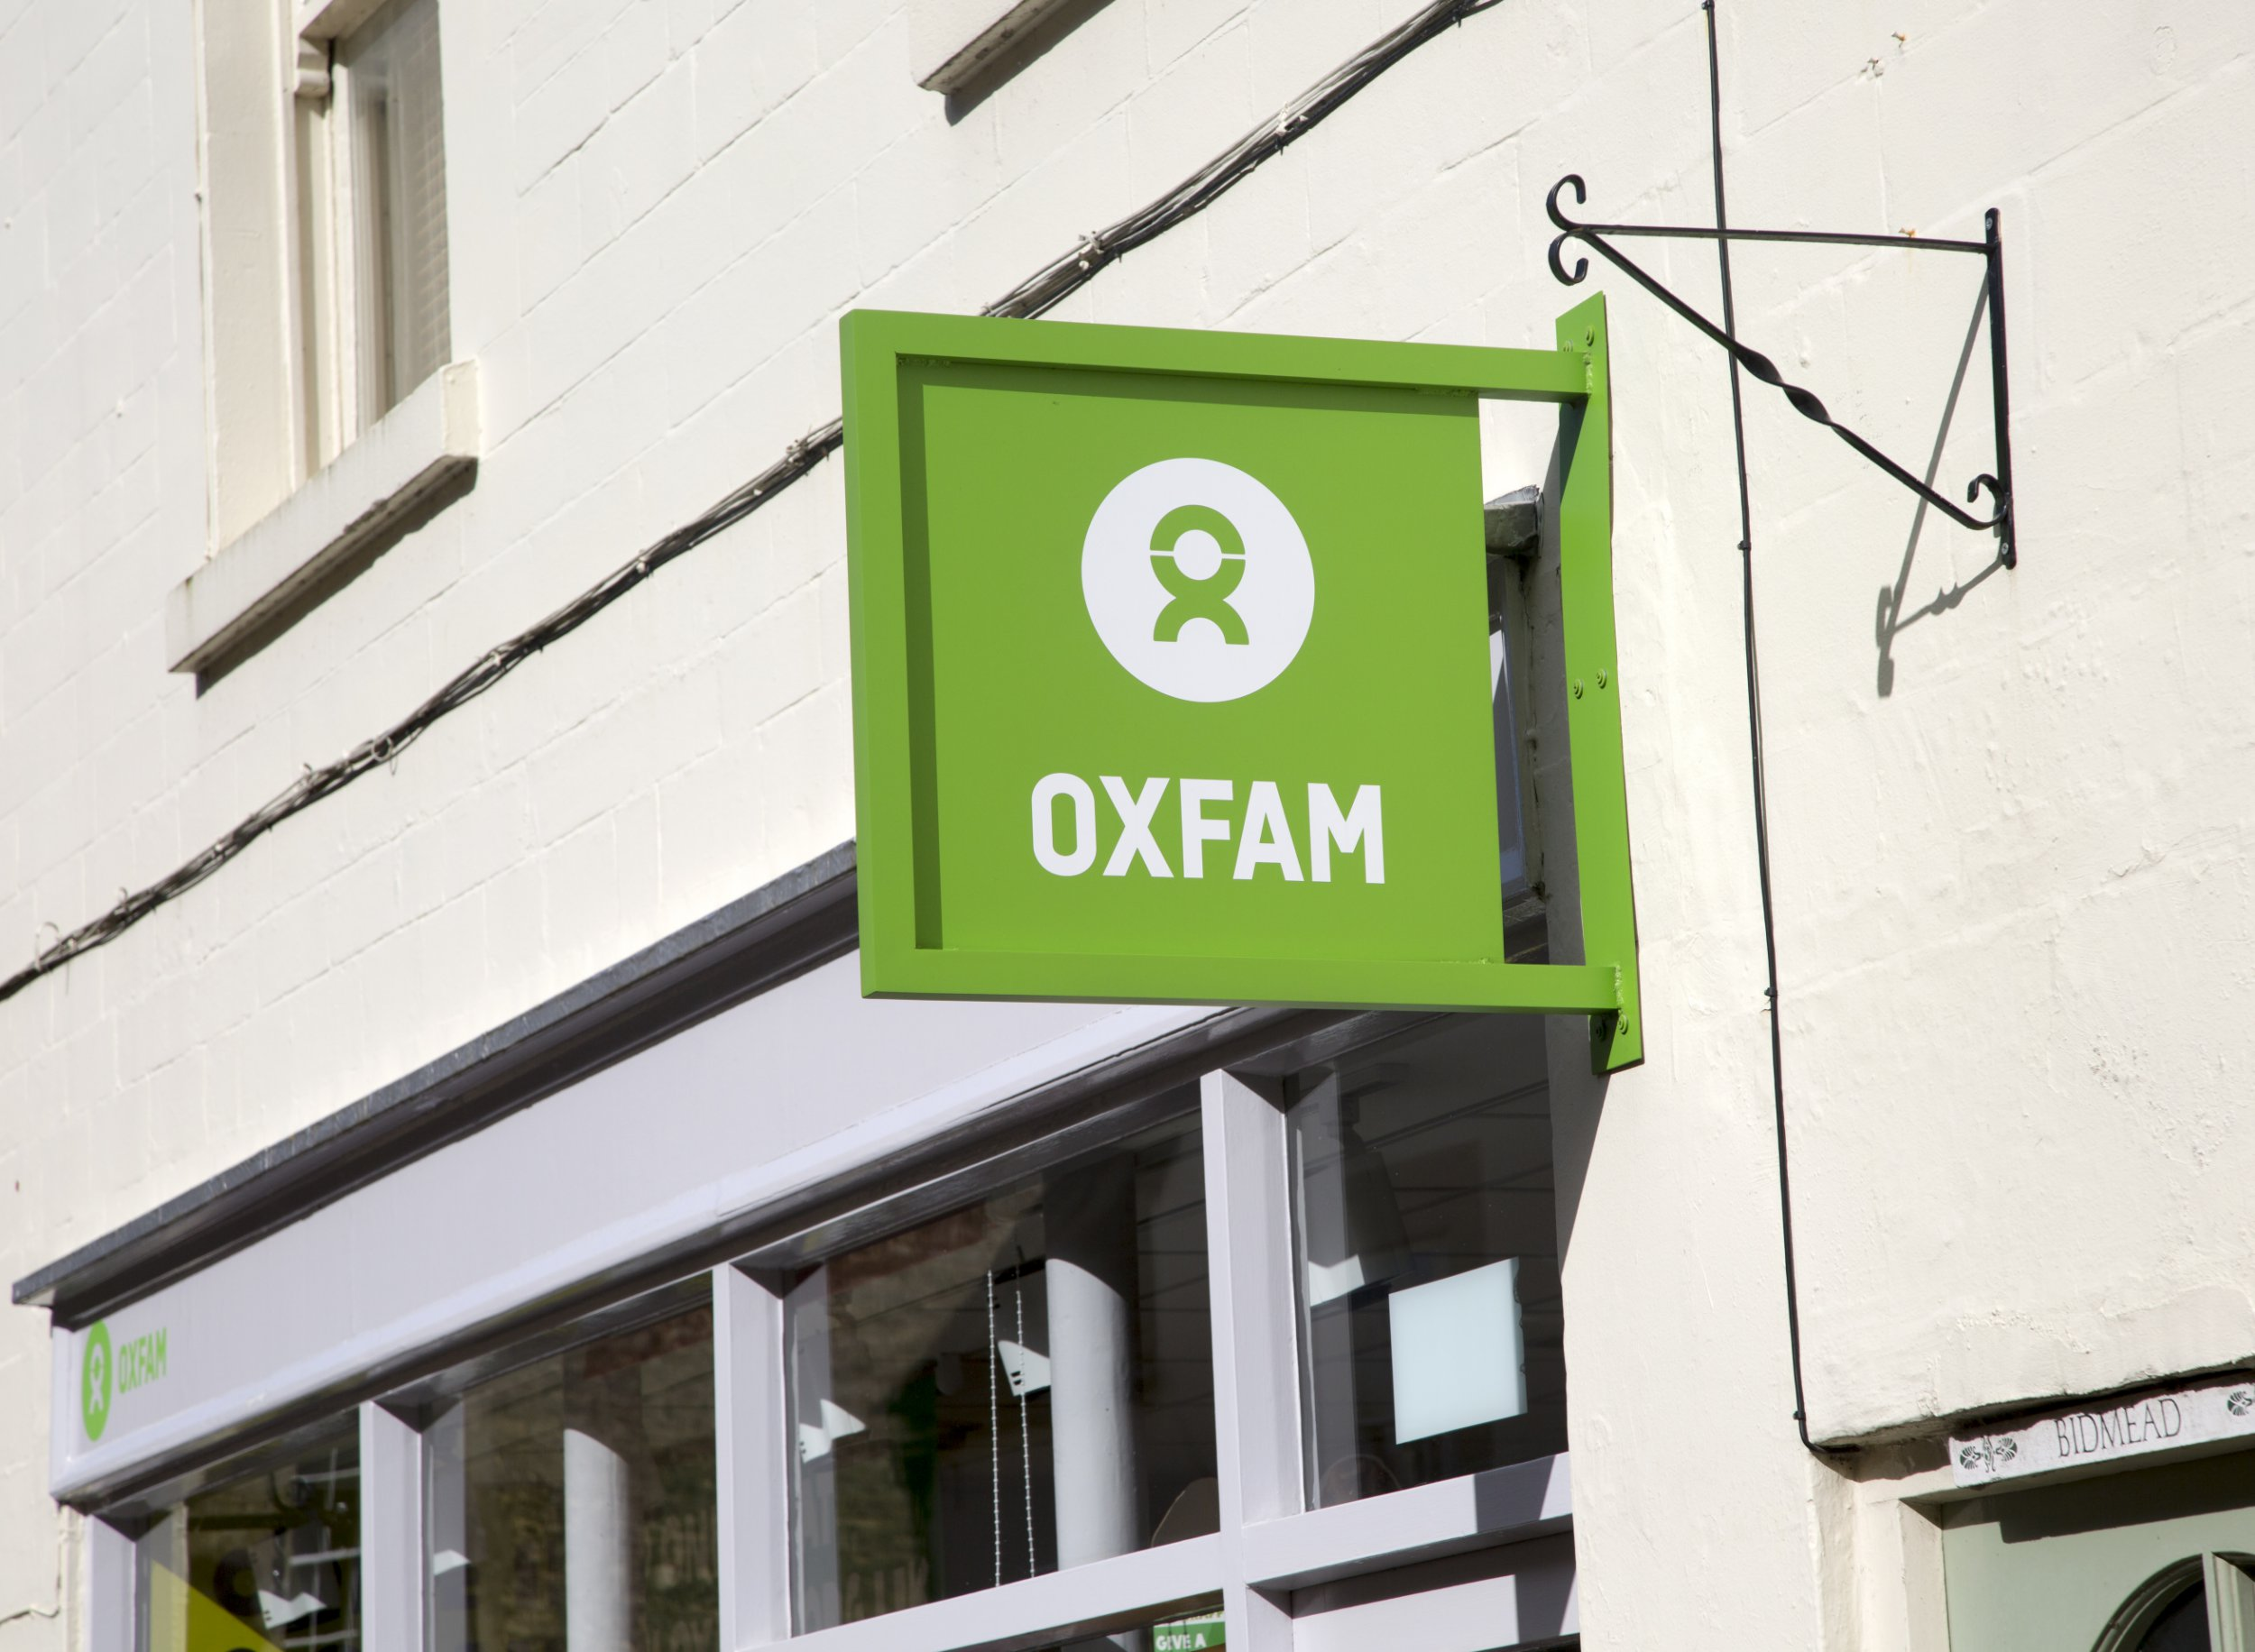 What does Oxfam stand for and what was the CEO's salary in 2017?